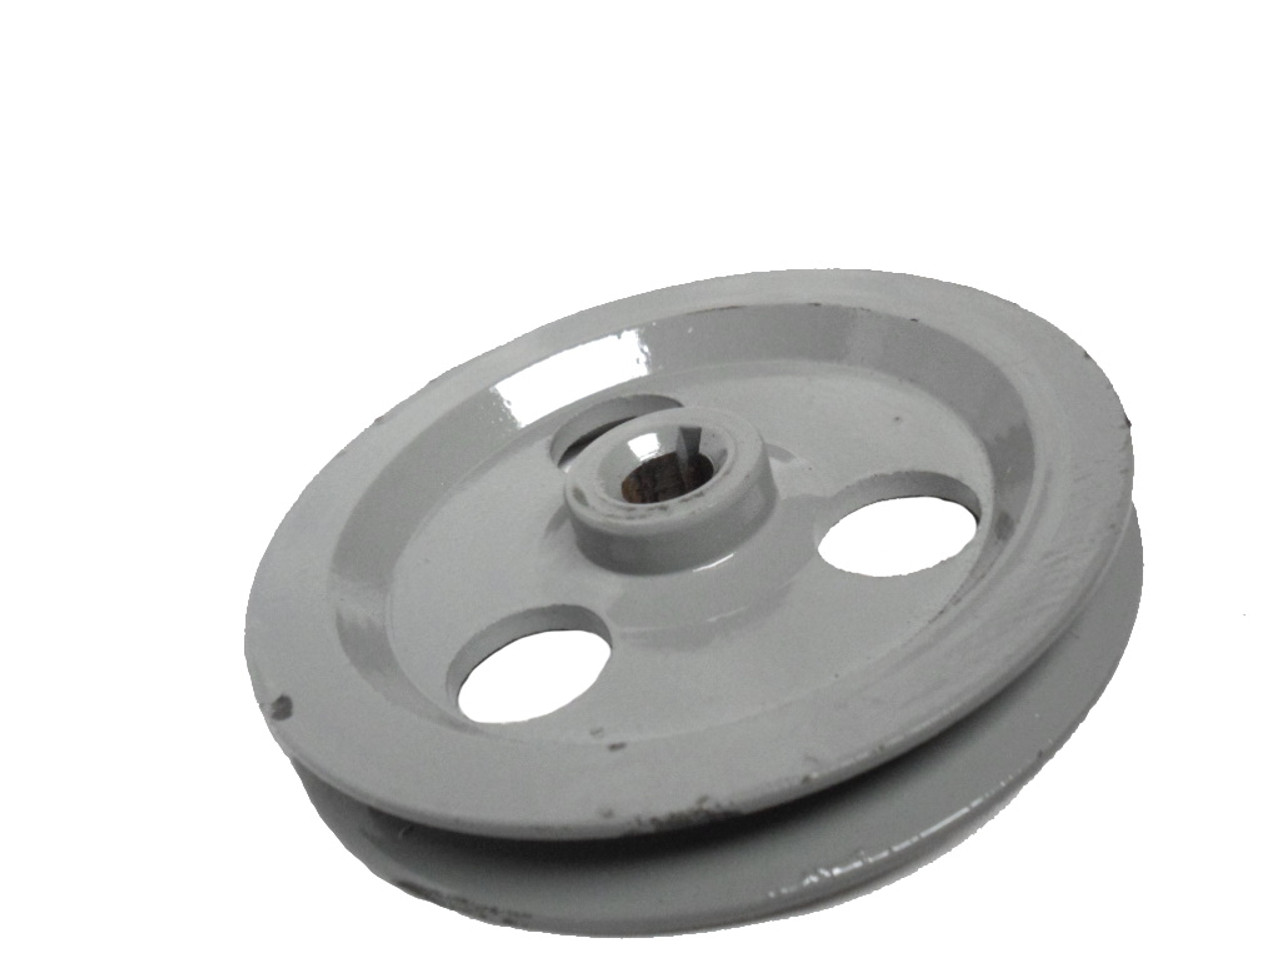 OEM Kinetic 105mm Rear Drive Pulley for Non-Variated Mopeds - TFR